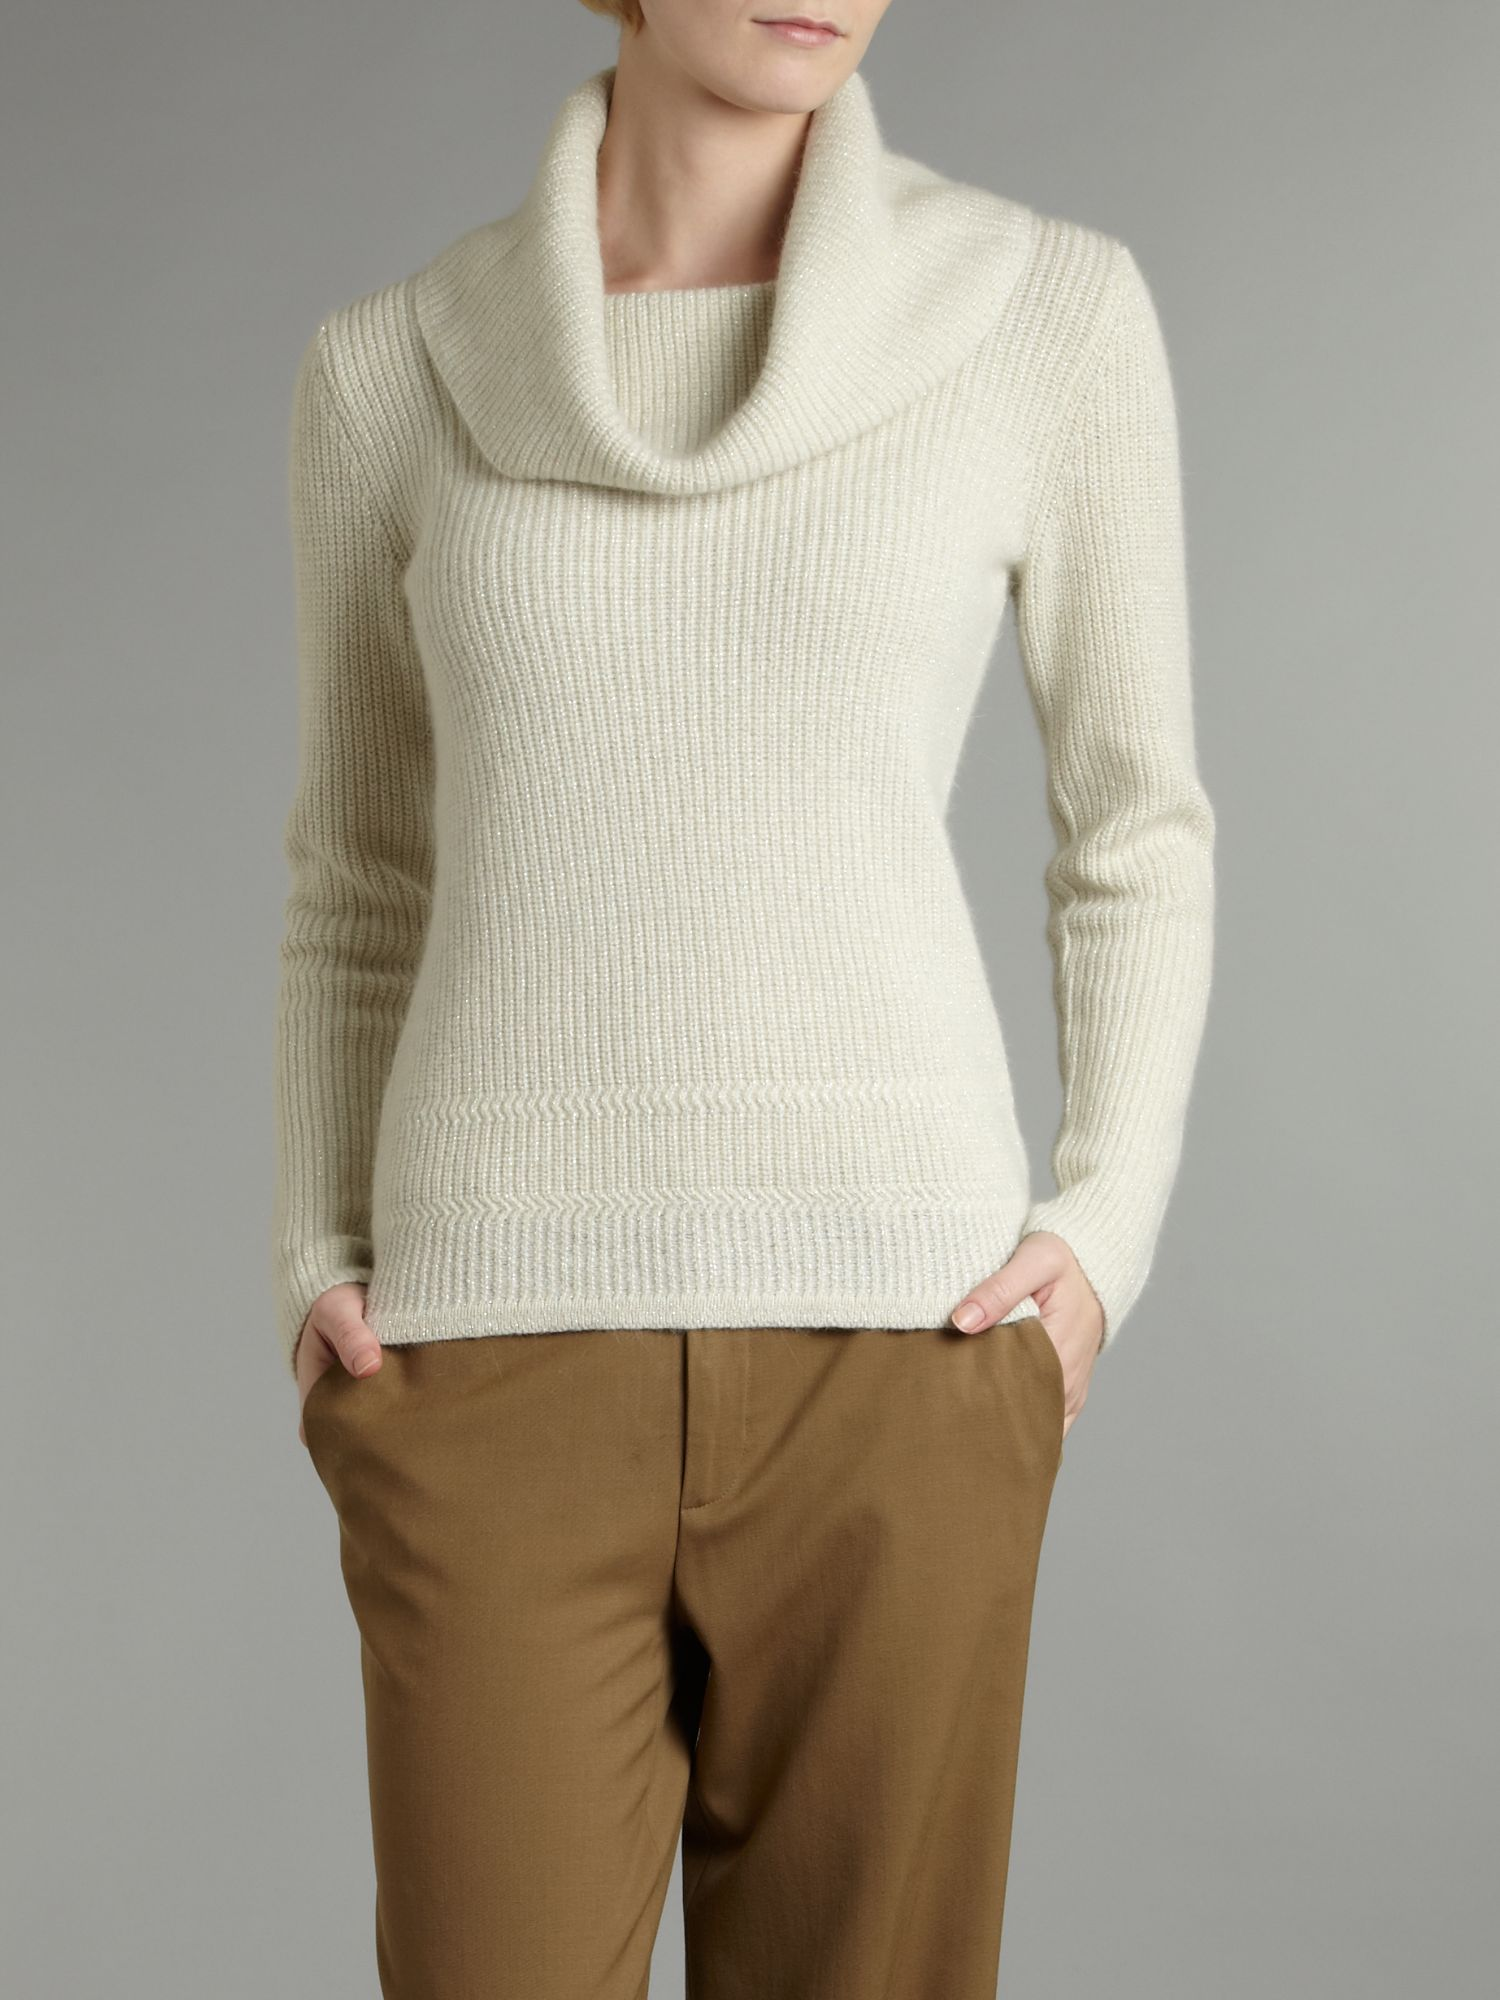 Lauren by ralph lauren Soft Cowl Neck Sweater in White | Lyst